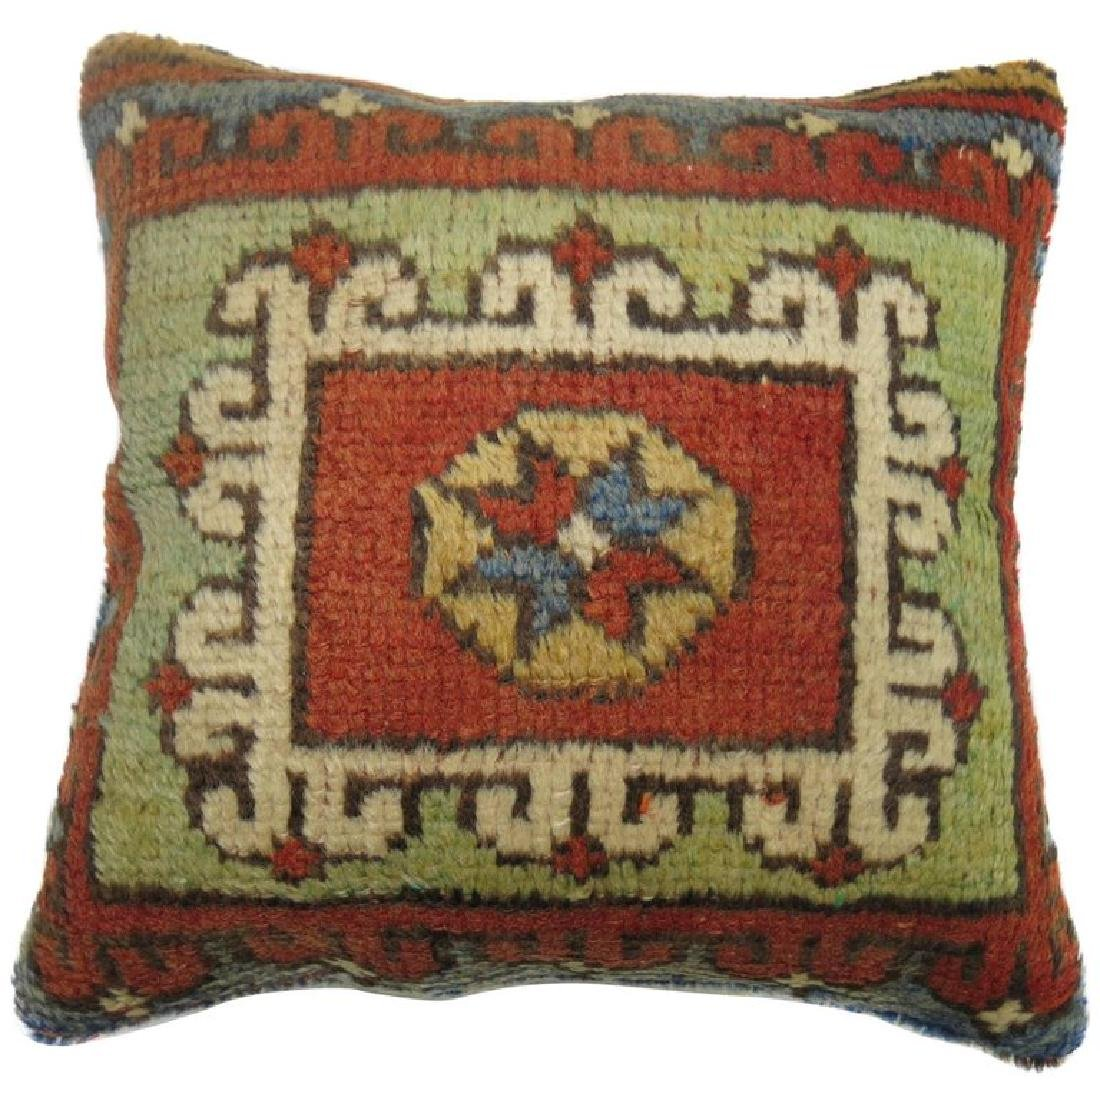 Turkish Bergama Rug Pillow 1.4x1.4x1.4